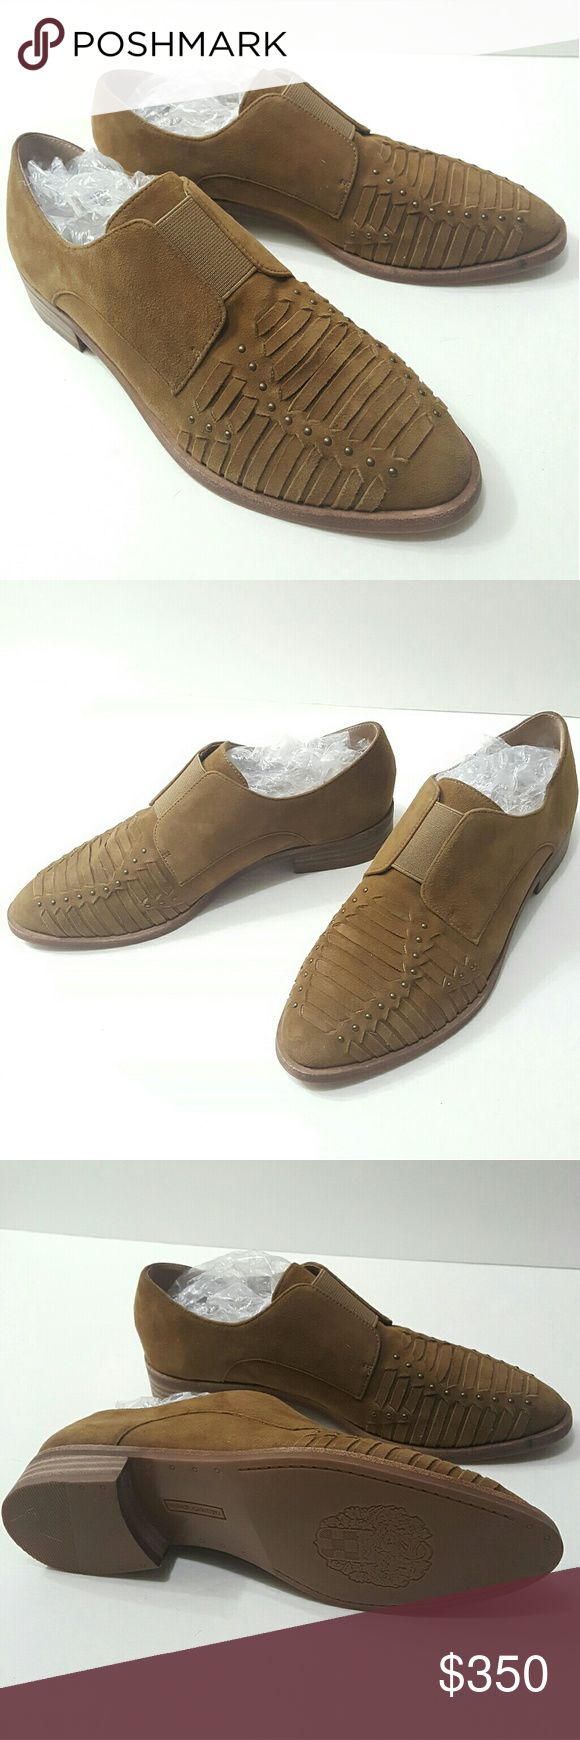 ⤵⤵New Vince Camuto Signature Suede Slip On New Vince Camuto Suede Signature Almond Brown Slip On. Brand new try on once. Fit true to size 7. Color: Almond Brown Suede. Not my style too bad. No box selling just the gorgeous. Fast Shipping and House Gifts. Come visit for great selection of handbag, handbag accessories key chain, keyring, replacement chain gold, silver or titanium italy curb design. Over 50 style of Twilly Available now! Bundle offer welcome! Final Sale No return Please raise…